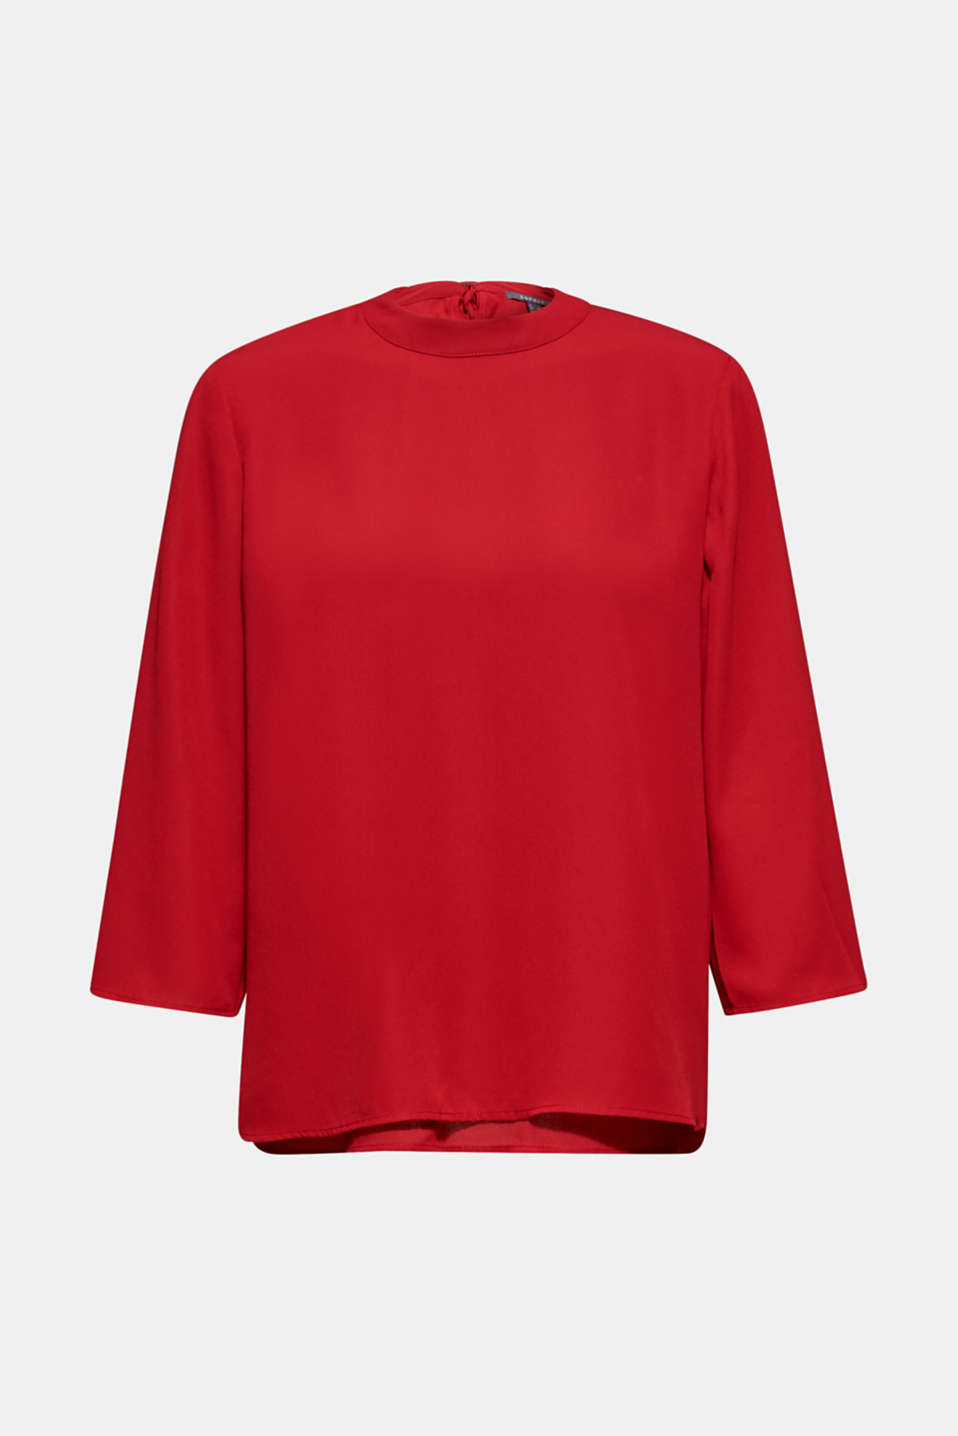 Chiffon blouse with a layered detail, DARK RED, detail image number 8